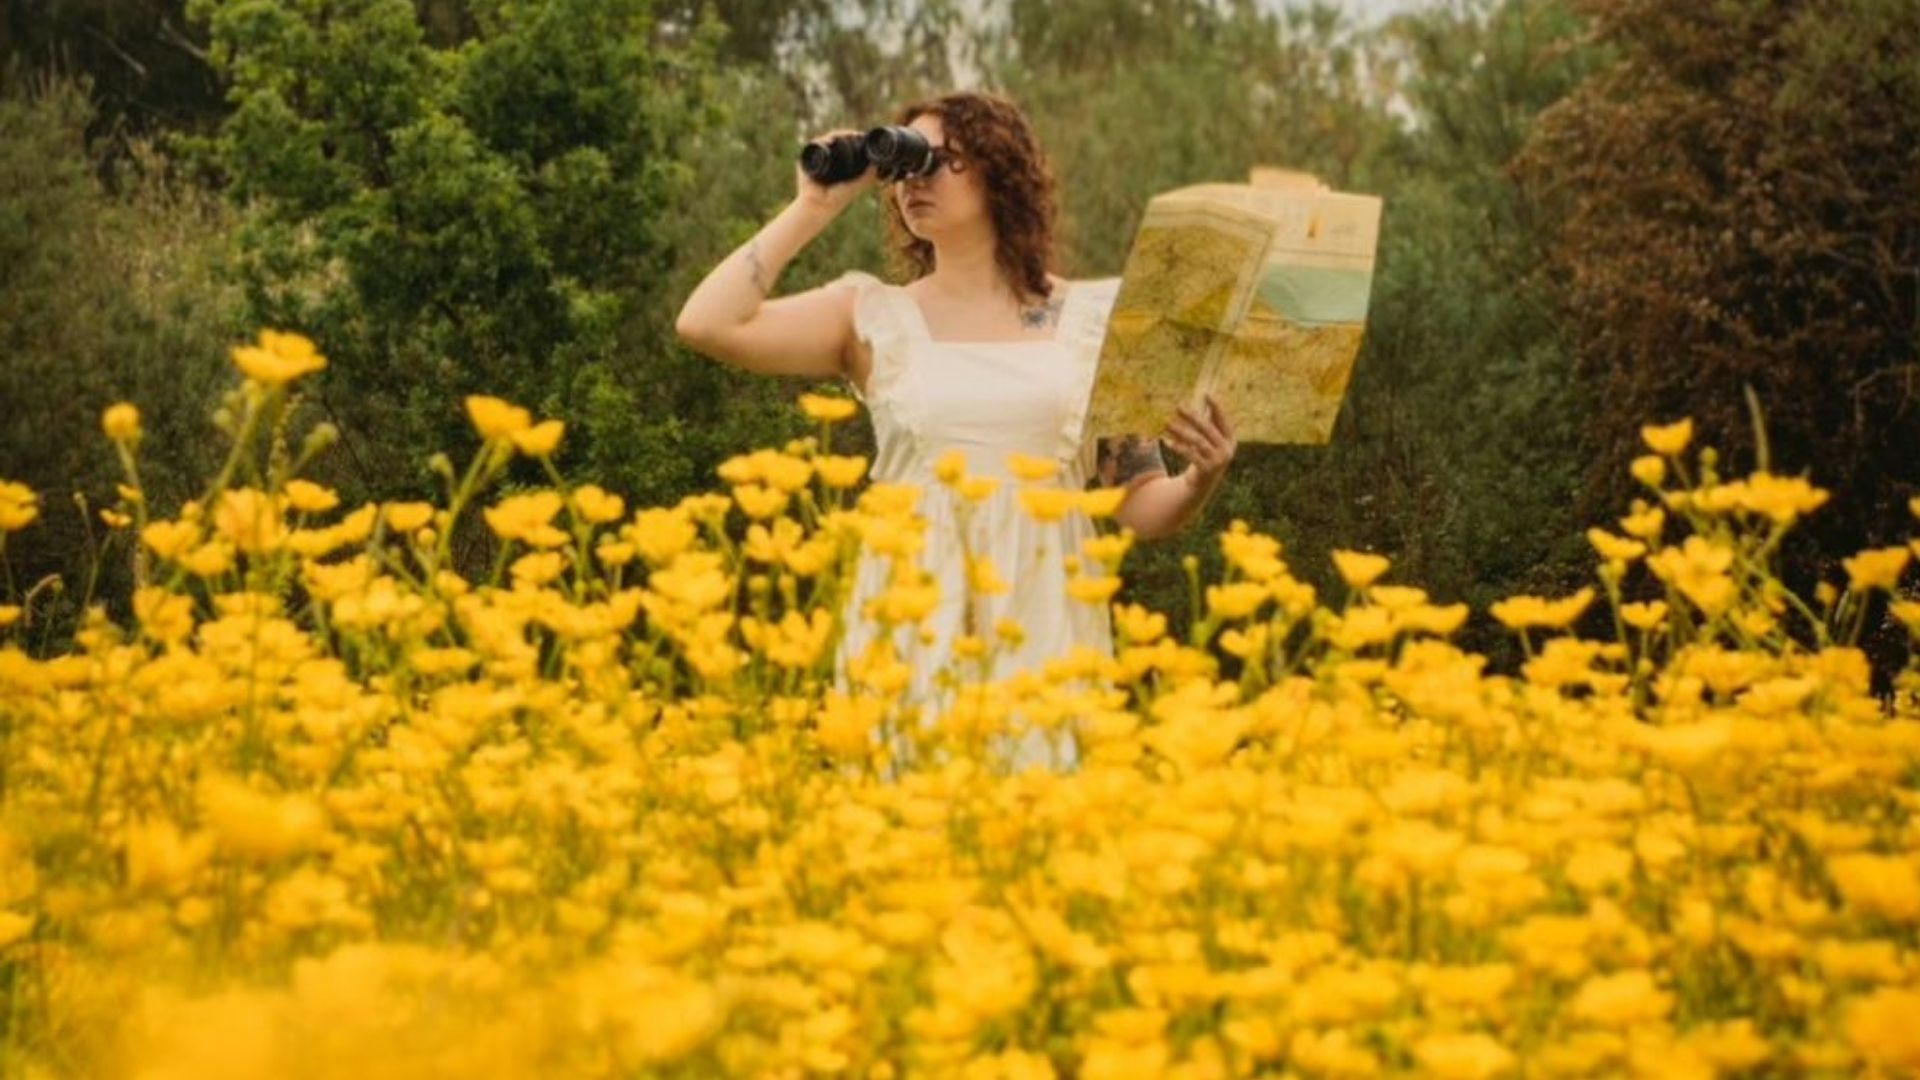 HOW TO CREATE VISUAL STORY TELLING PICTURES @FromBeeWithLove Bronte Huskinson